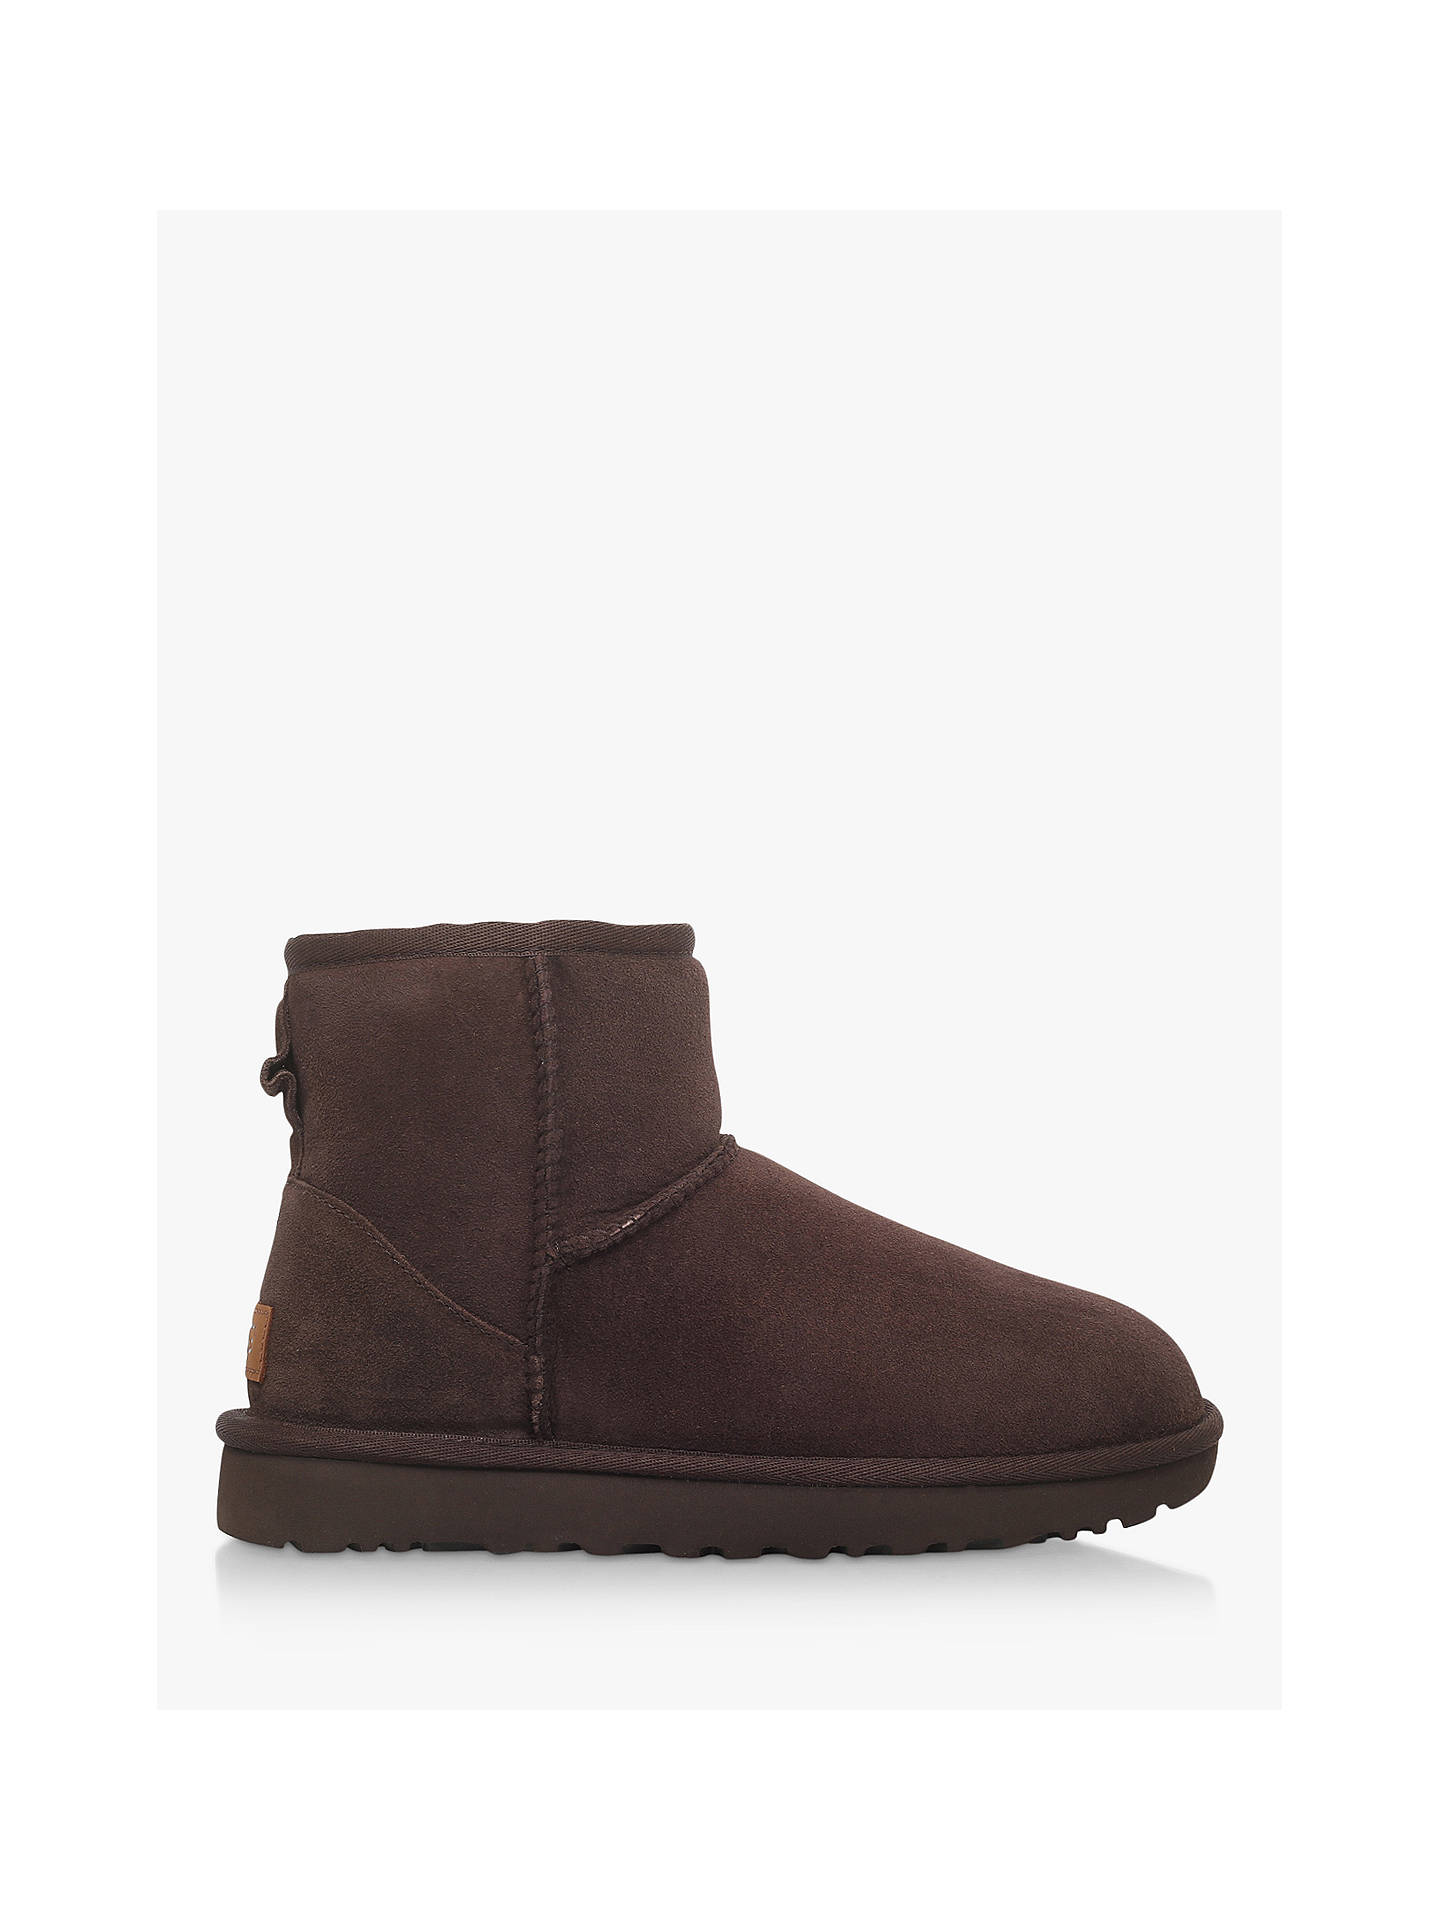 f9124d6bbdc Buy UGG Classic II Mini Sheepskin Ankle Boots, Chocolate, 3 Online at  johnlewis.